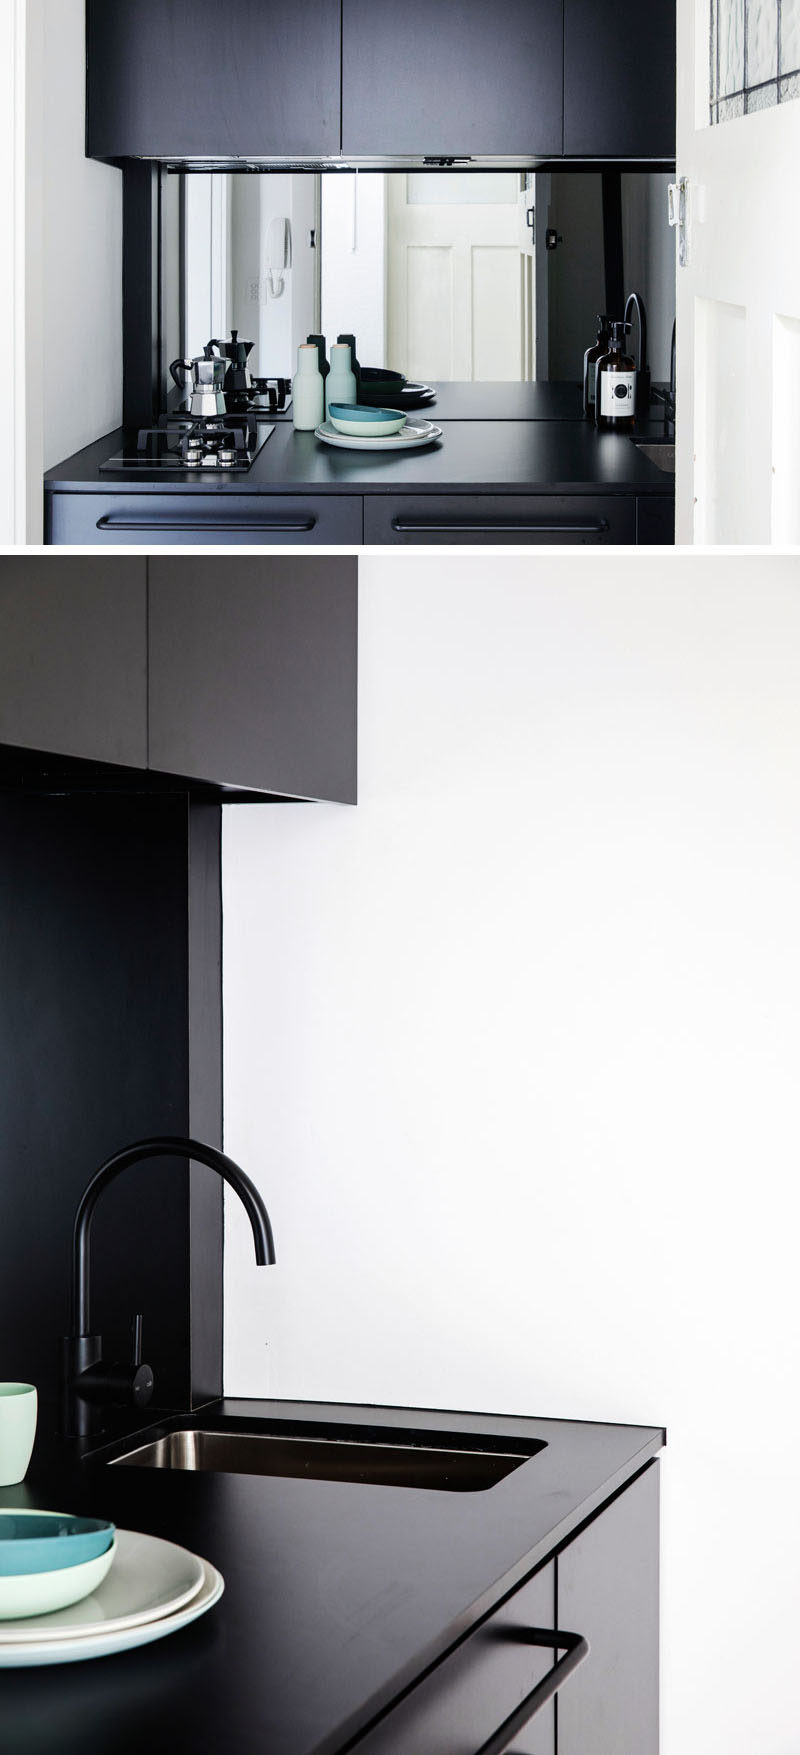 Stepping inside this tiny apartment, you walk straight into a small kitchen. The matte black cabinets stand out, and a mirrored backsplash helps to make the space appear larger.